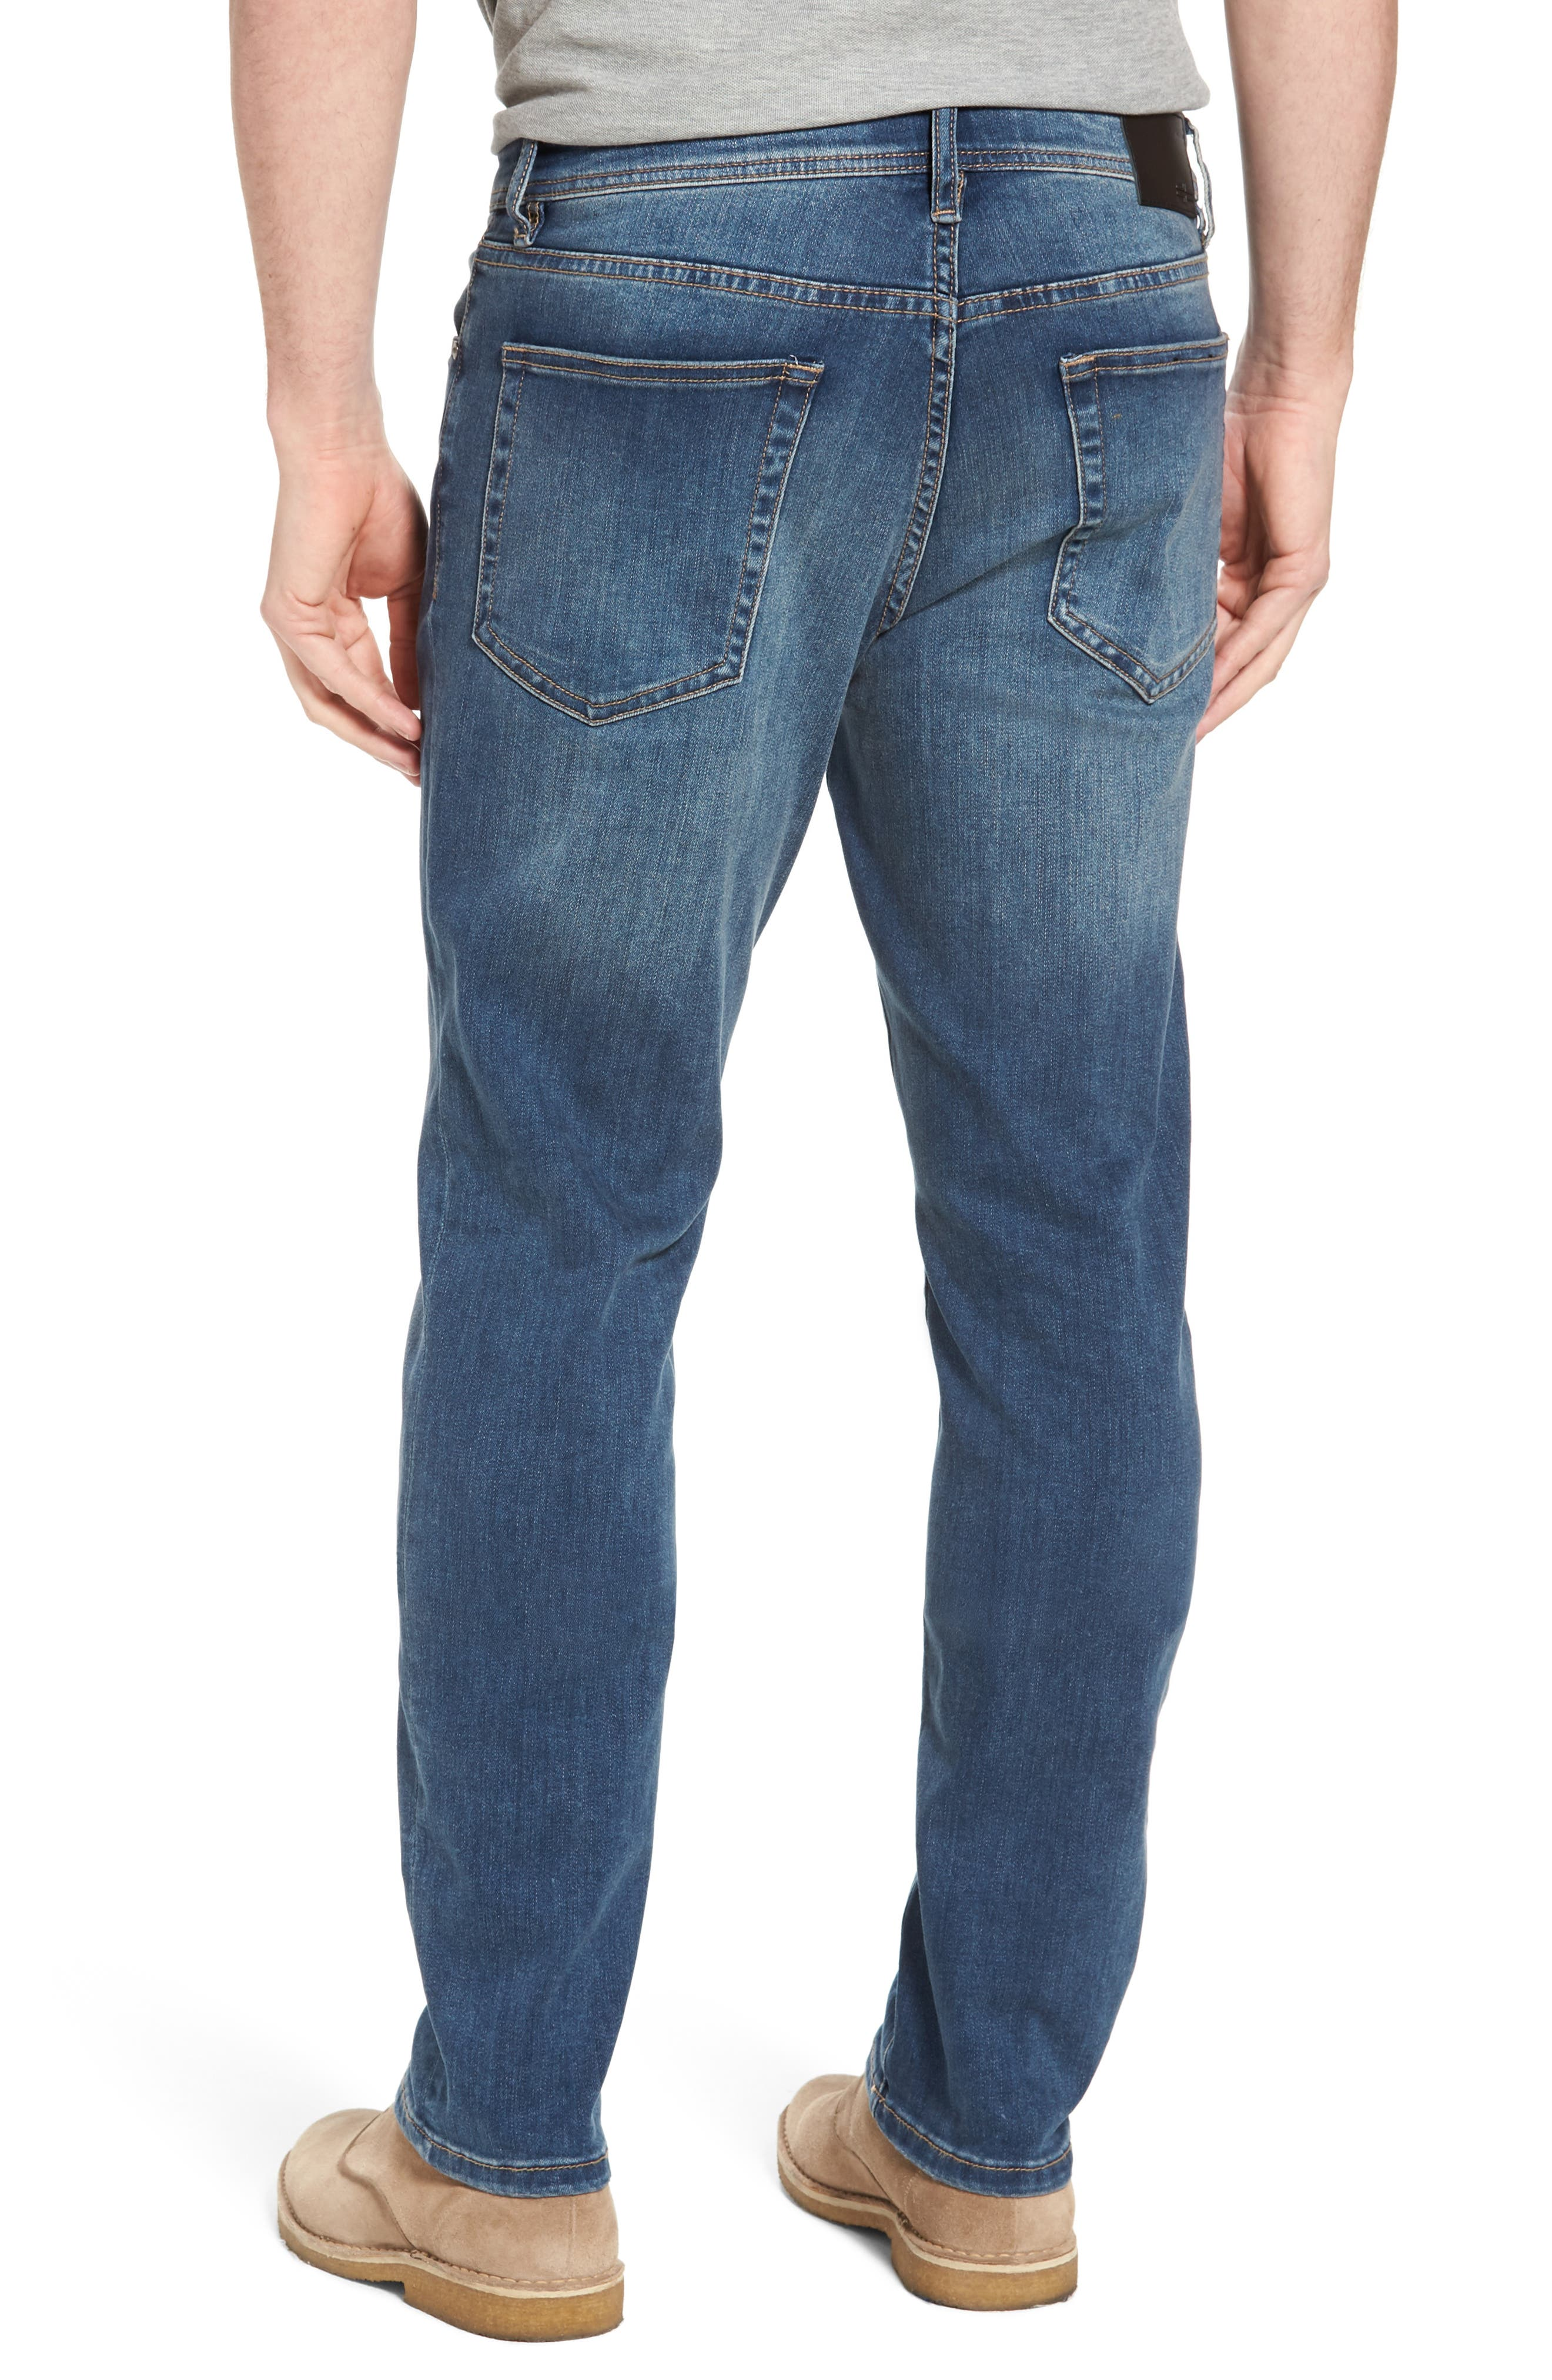 Jeans Co. Regent Relaxed Fit Jeans,                             Alternate thumbnail 2, color,                             CHATSWORTH